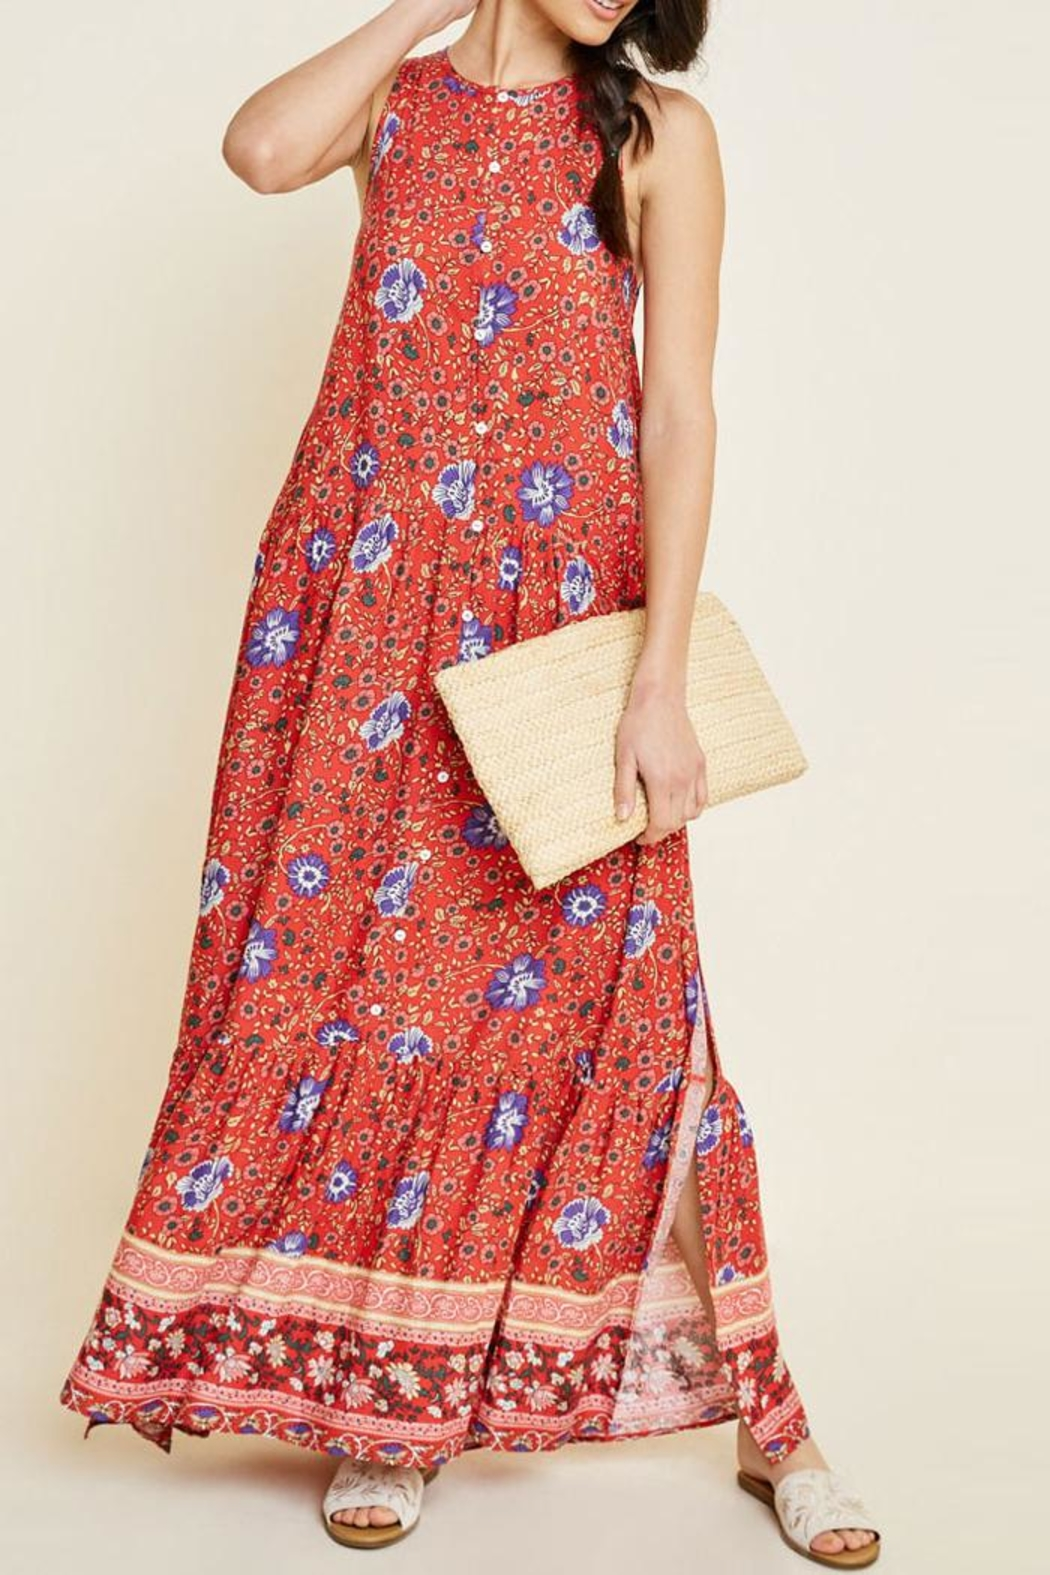 Hayden Los Angeles Floral Maxi Dress - Main Image